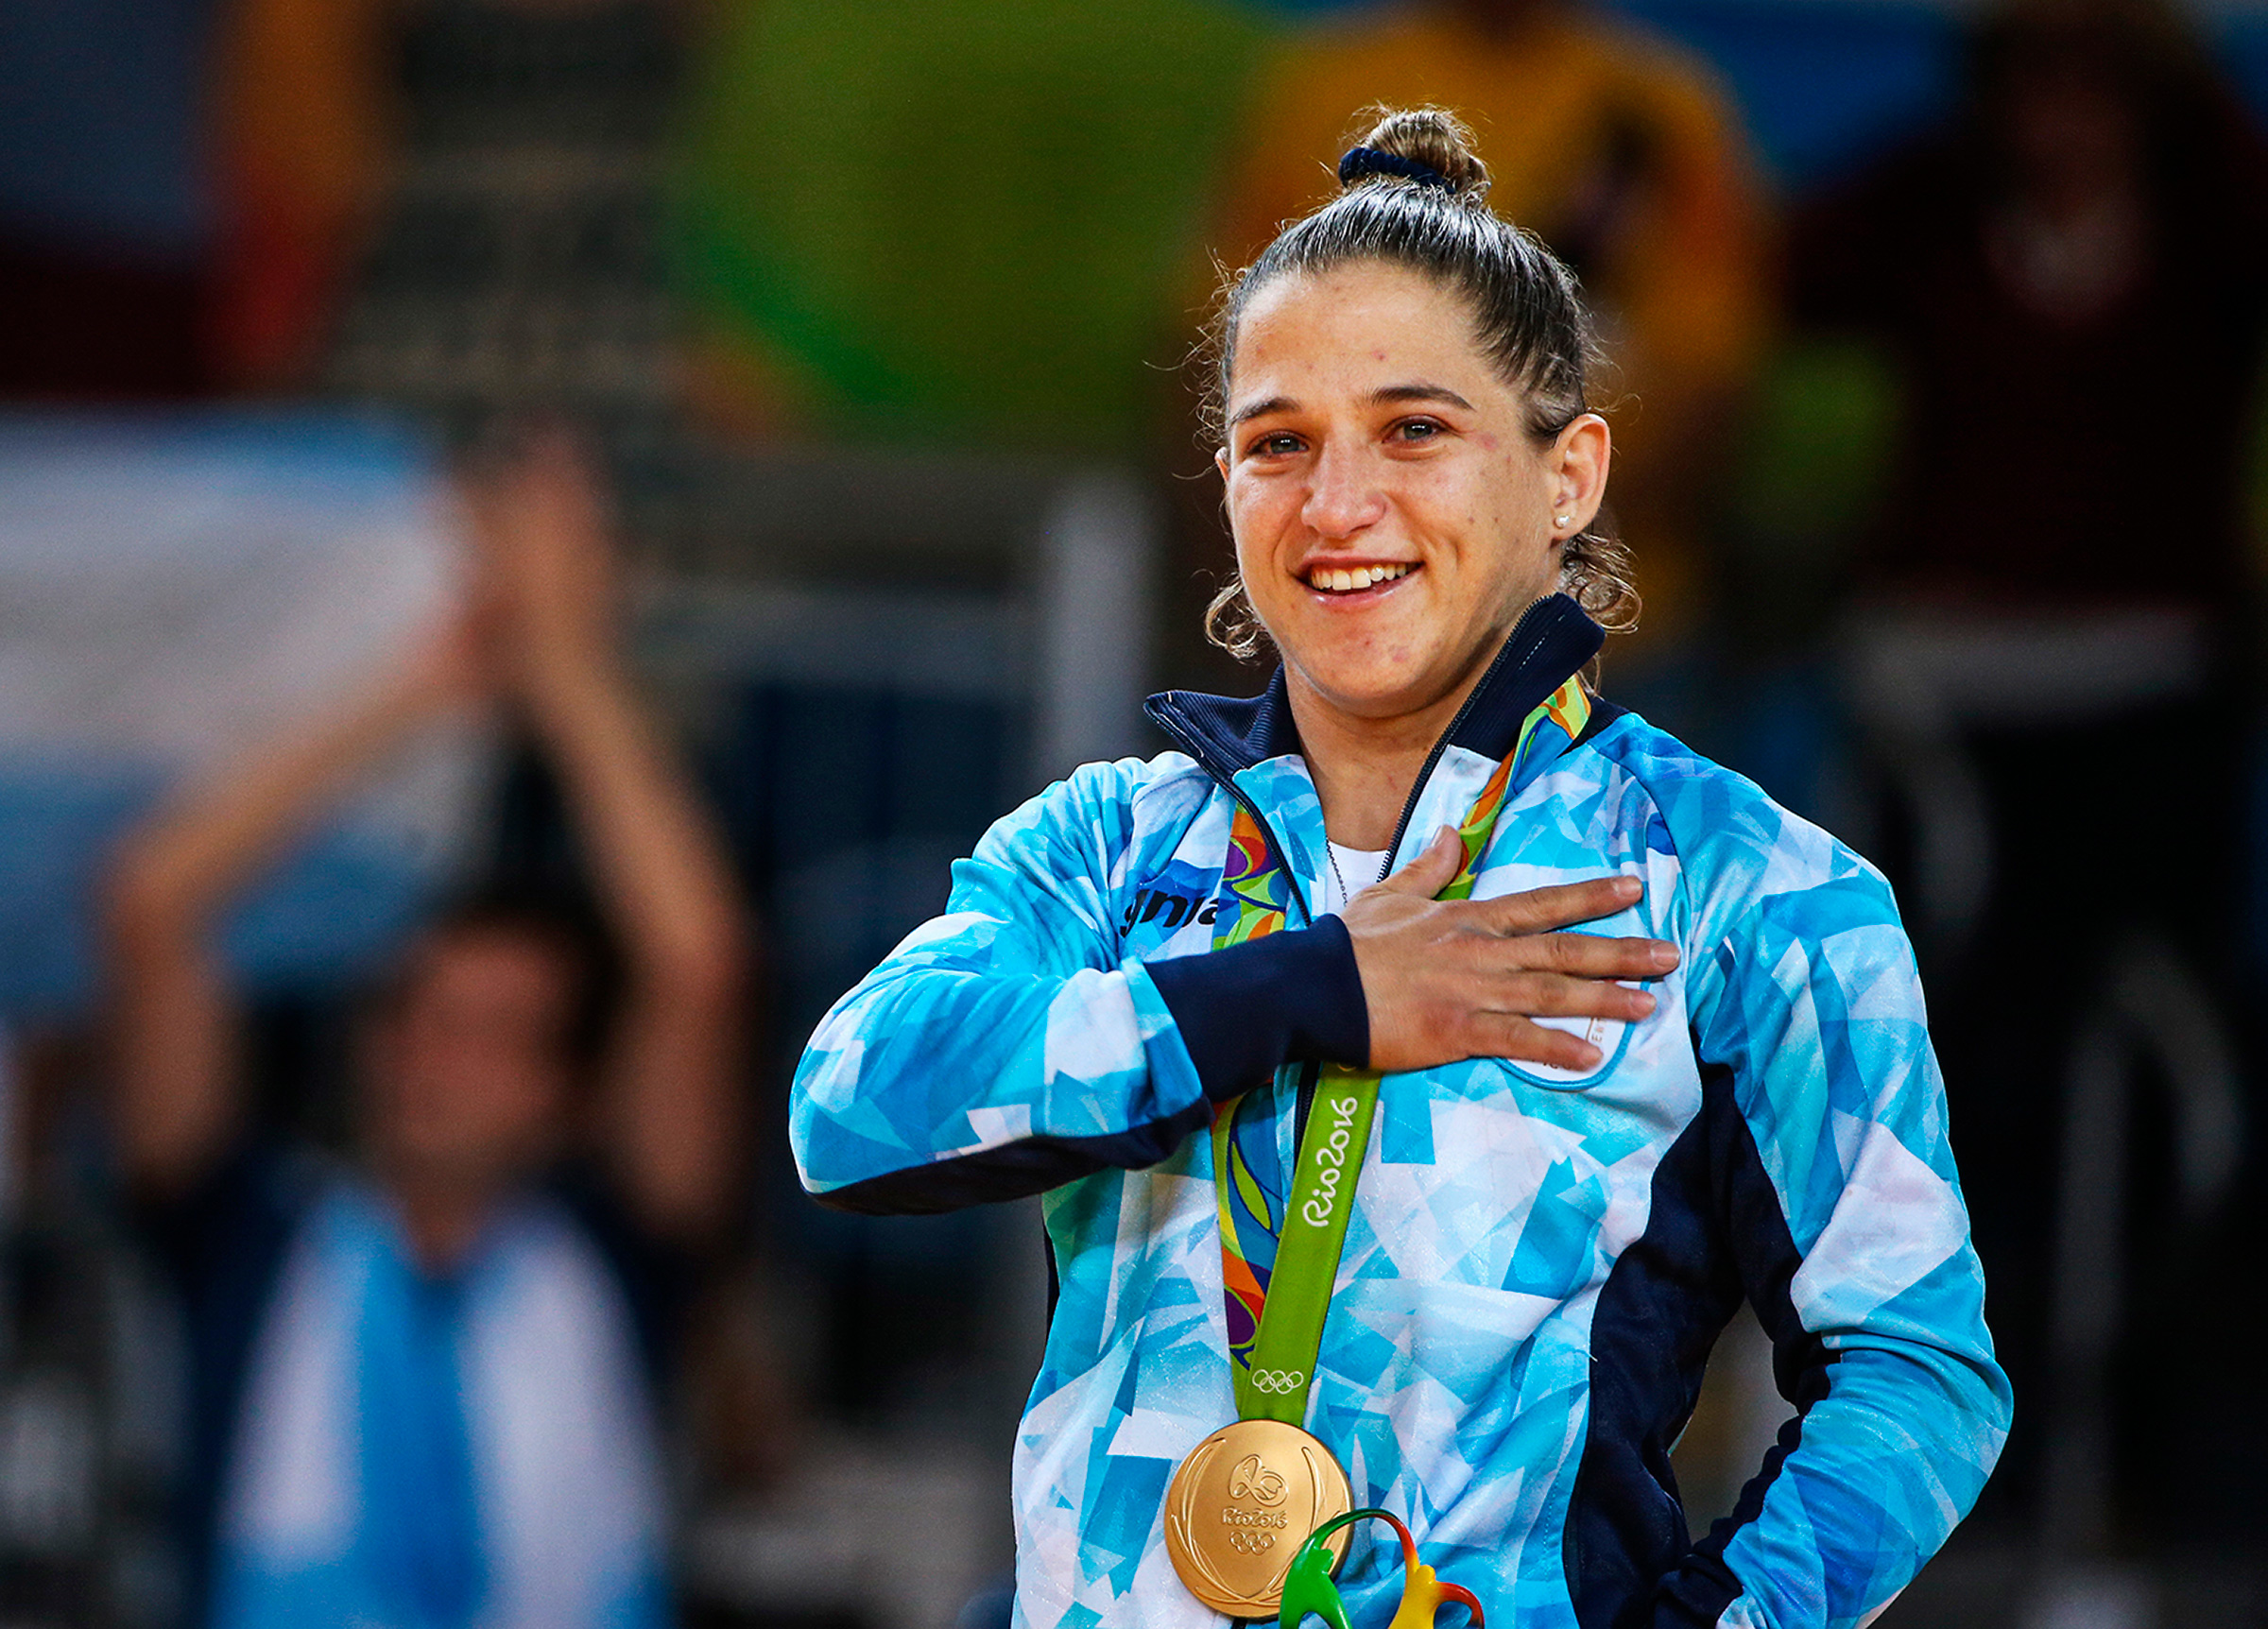 Pareto is ranked sixth in the under-48-kg class by the international Judo Federation